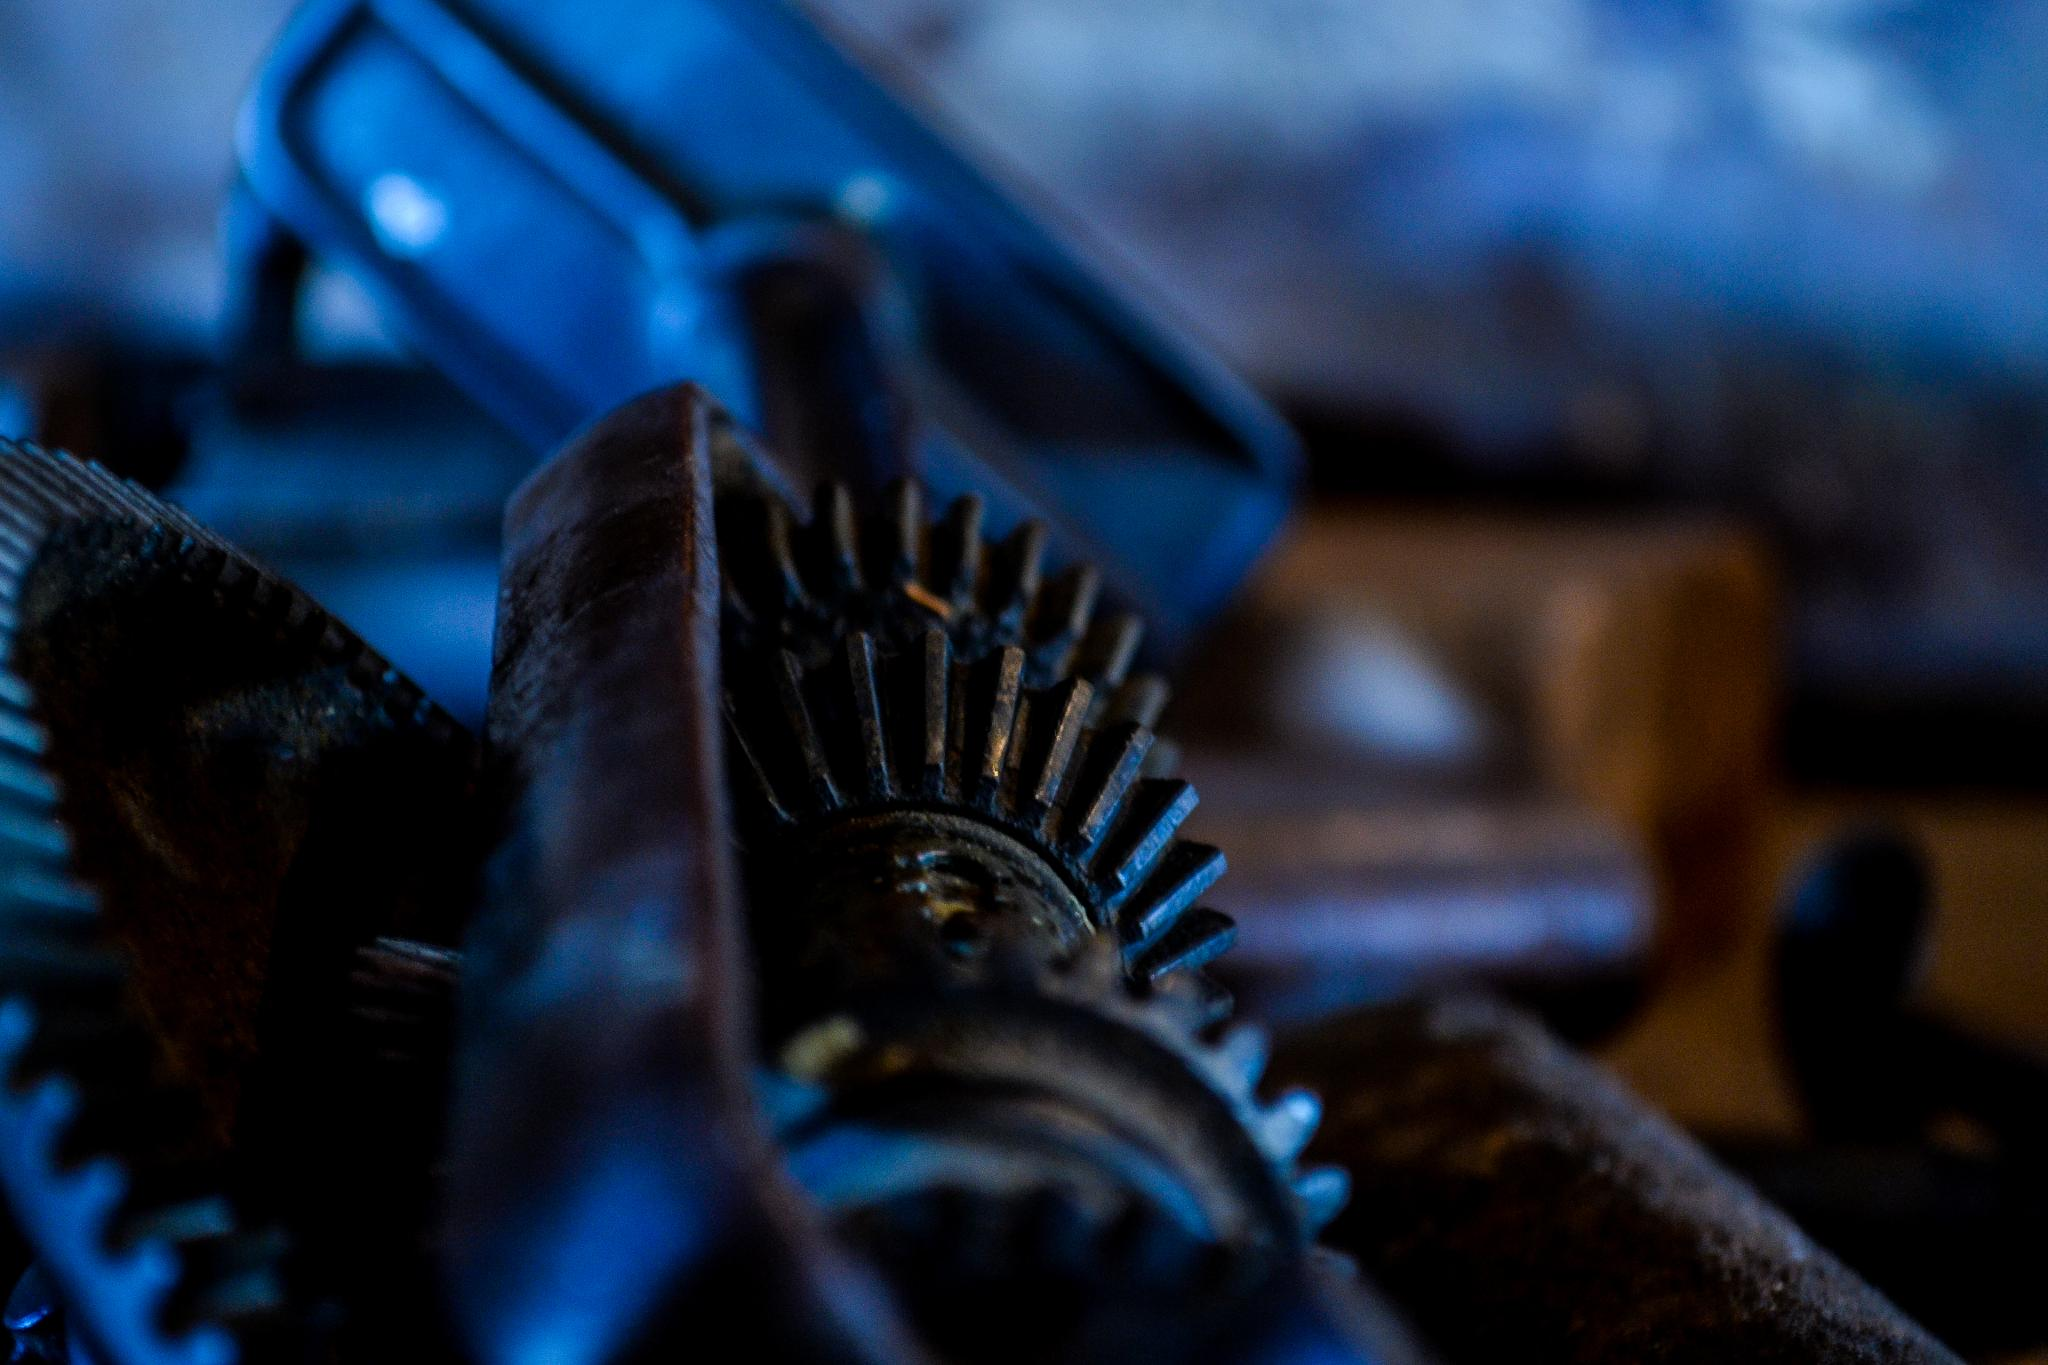 Gears by MikeB28